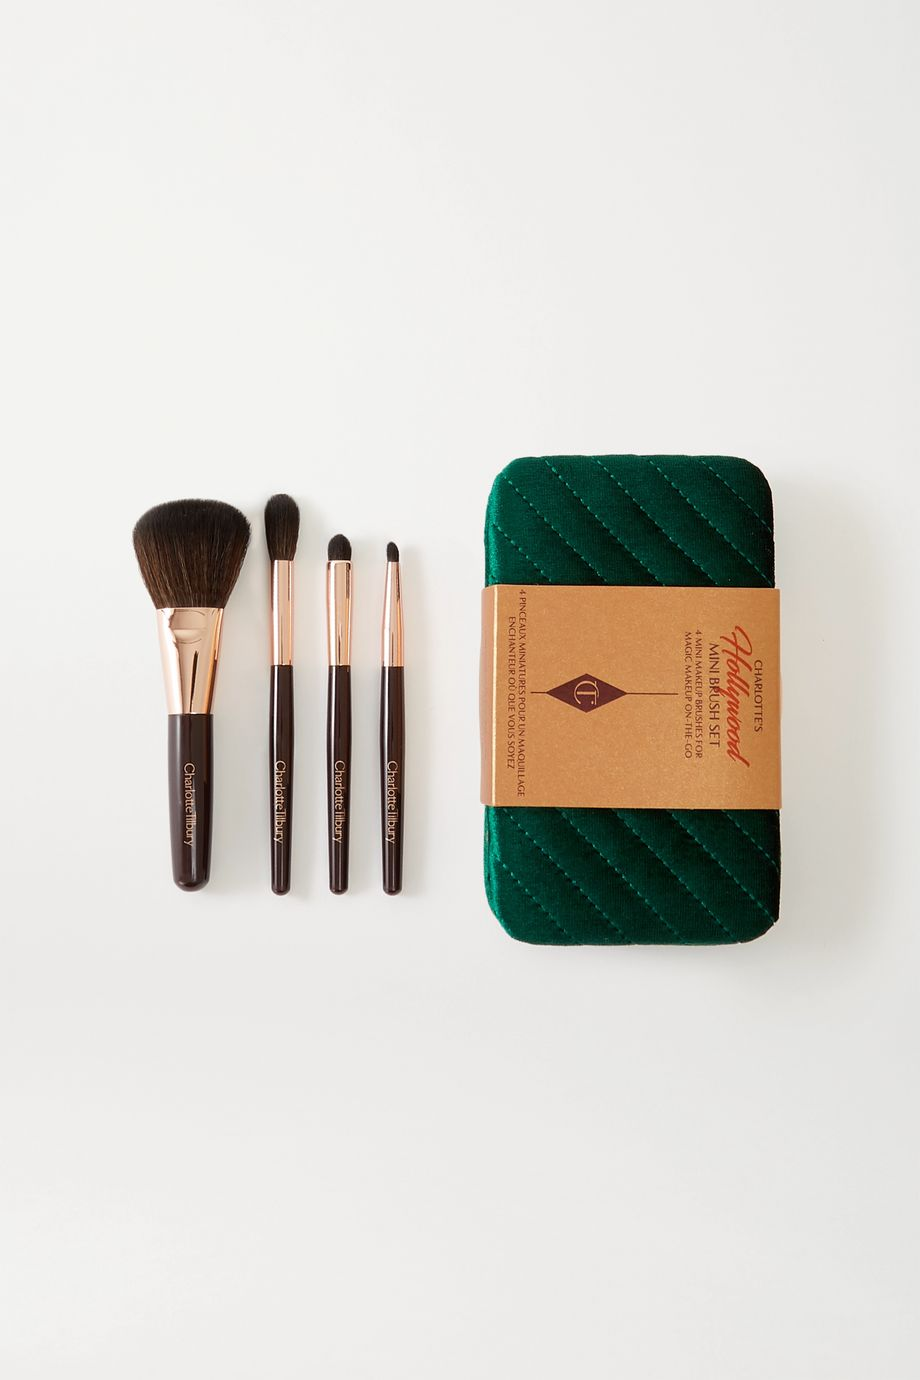 Charlotte Tilbury Coffret de pinceaux à maquillage miniatures Hollywood